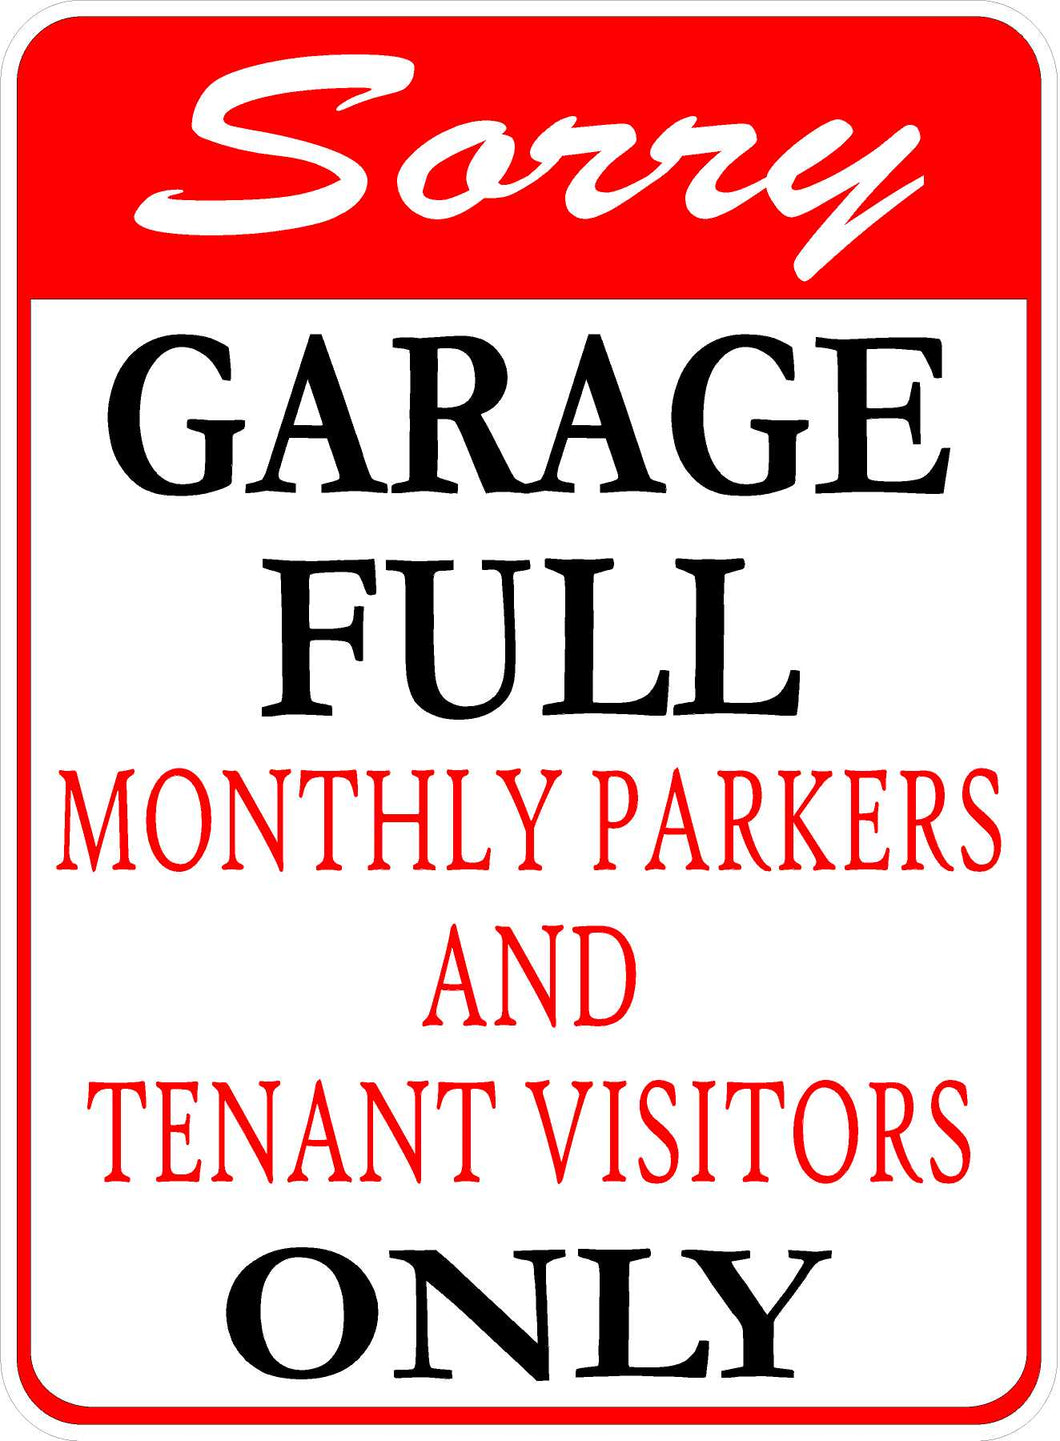 Sorry Garage Full Sign